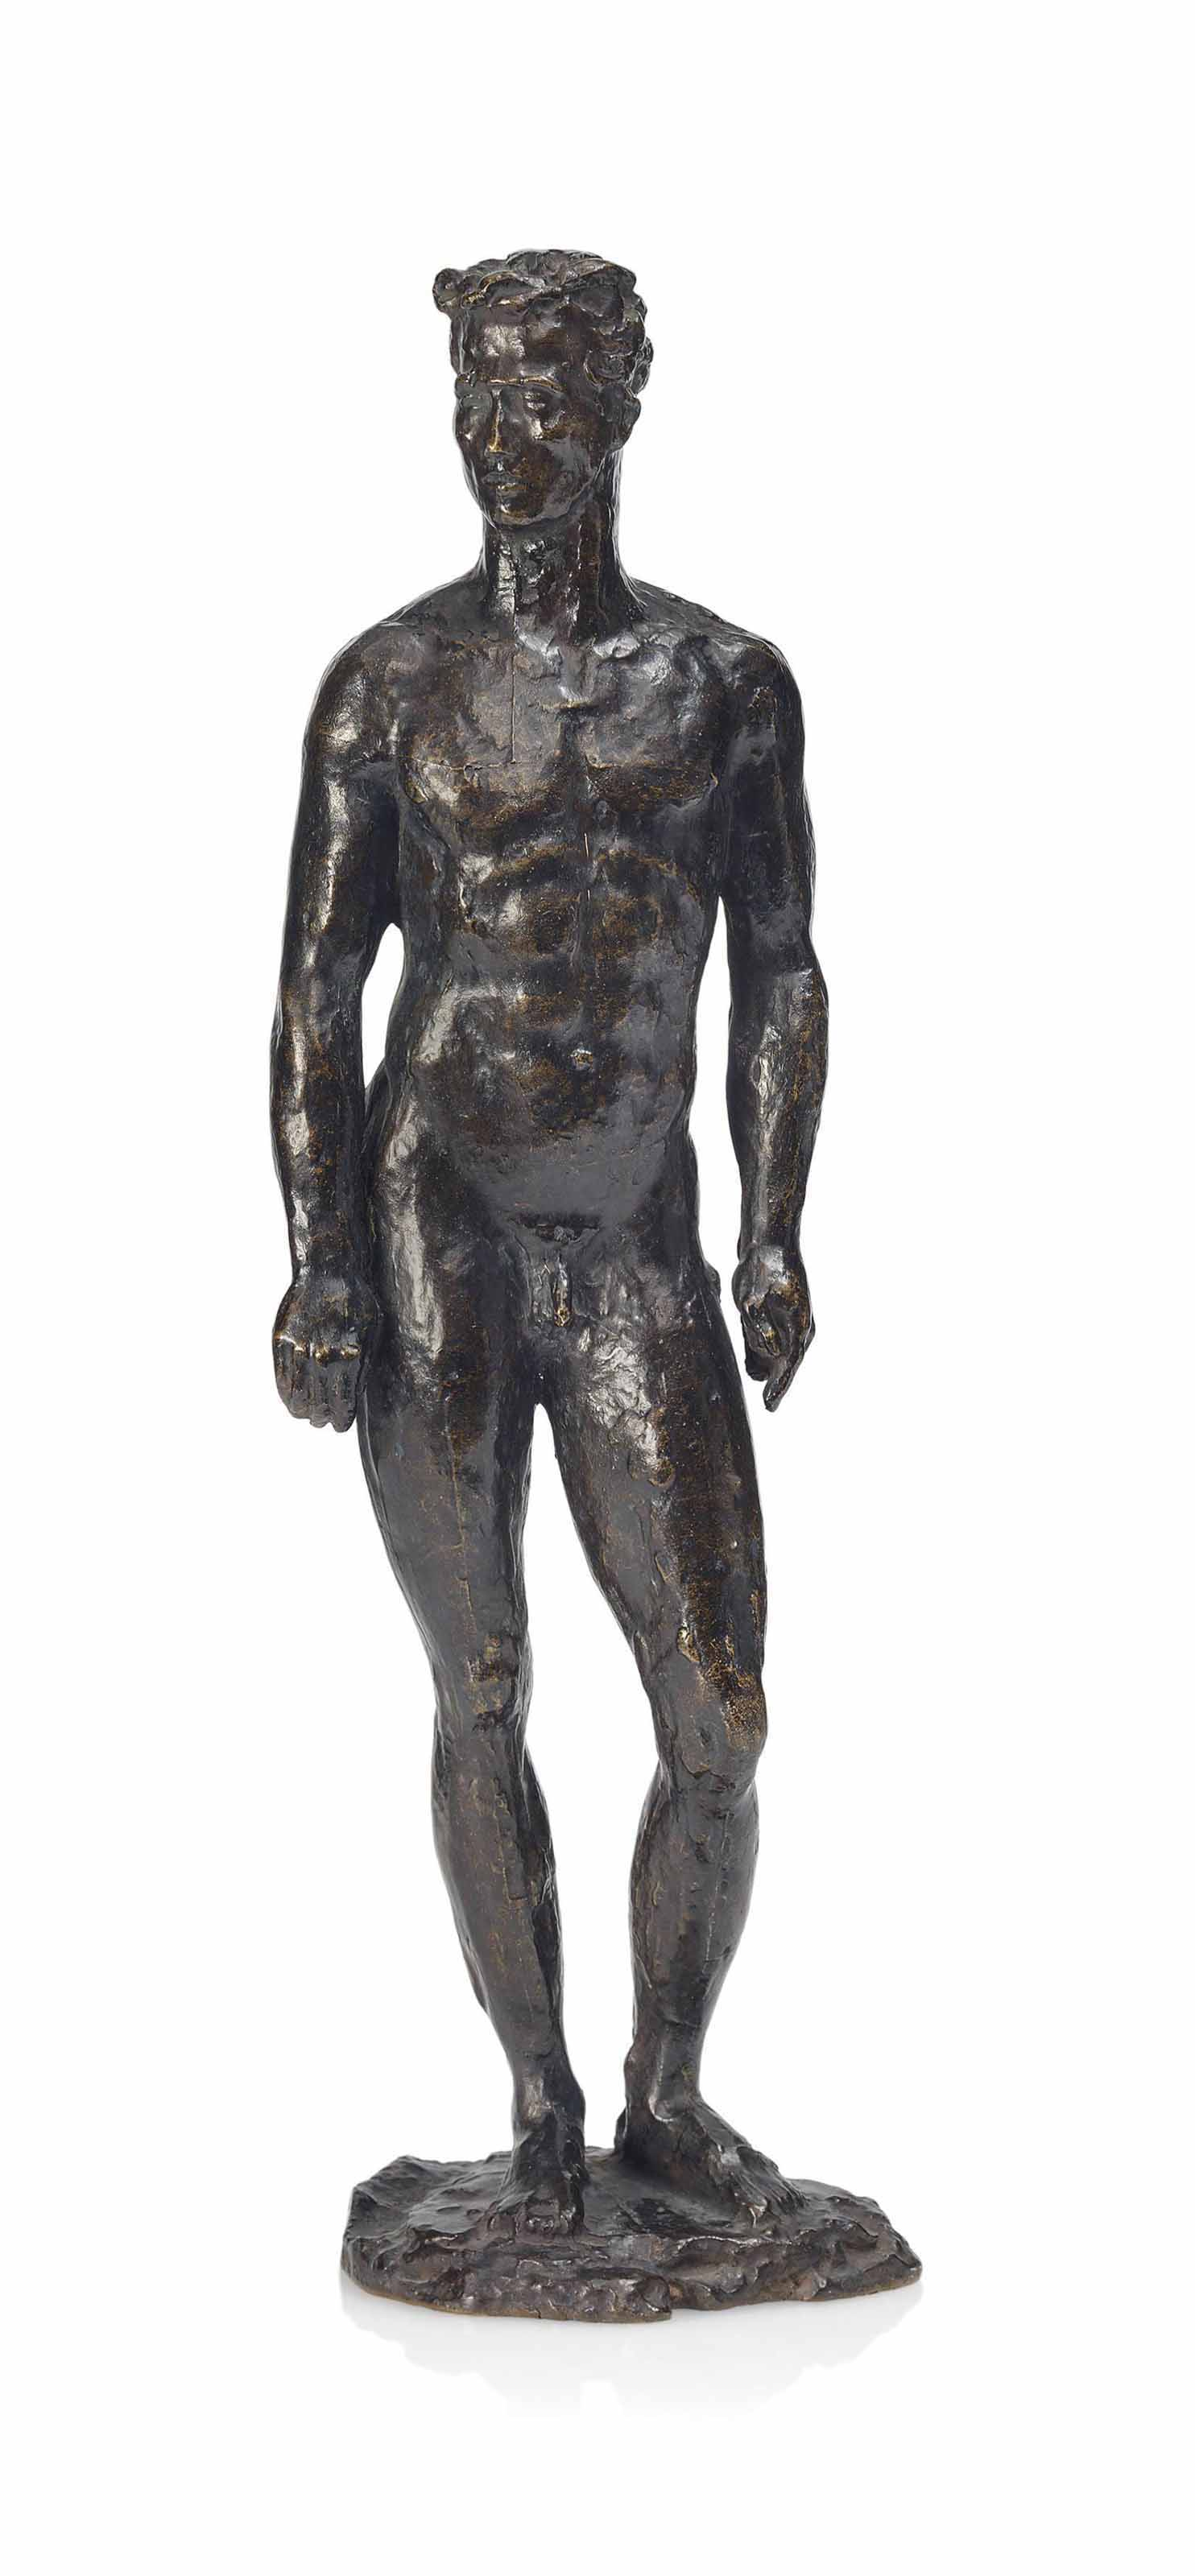 A PAUL BELMONDO (1898-1982) PATINATED BRONZE STUDY OF A MALE NUDE